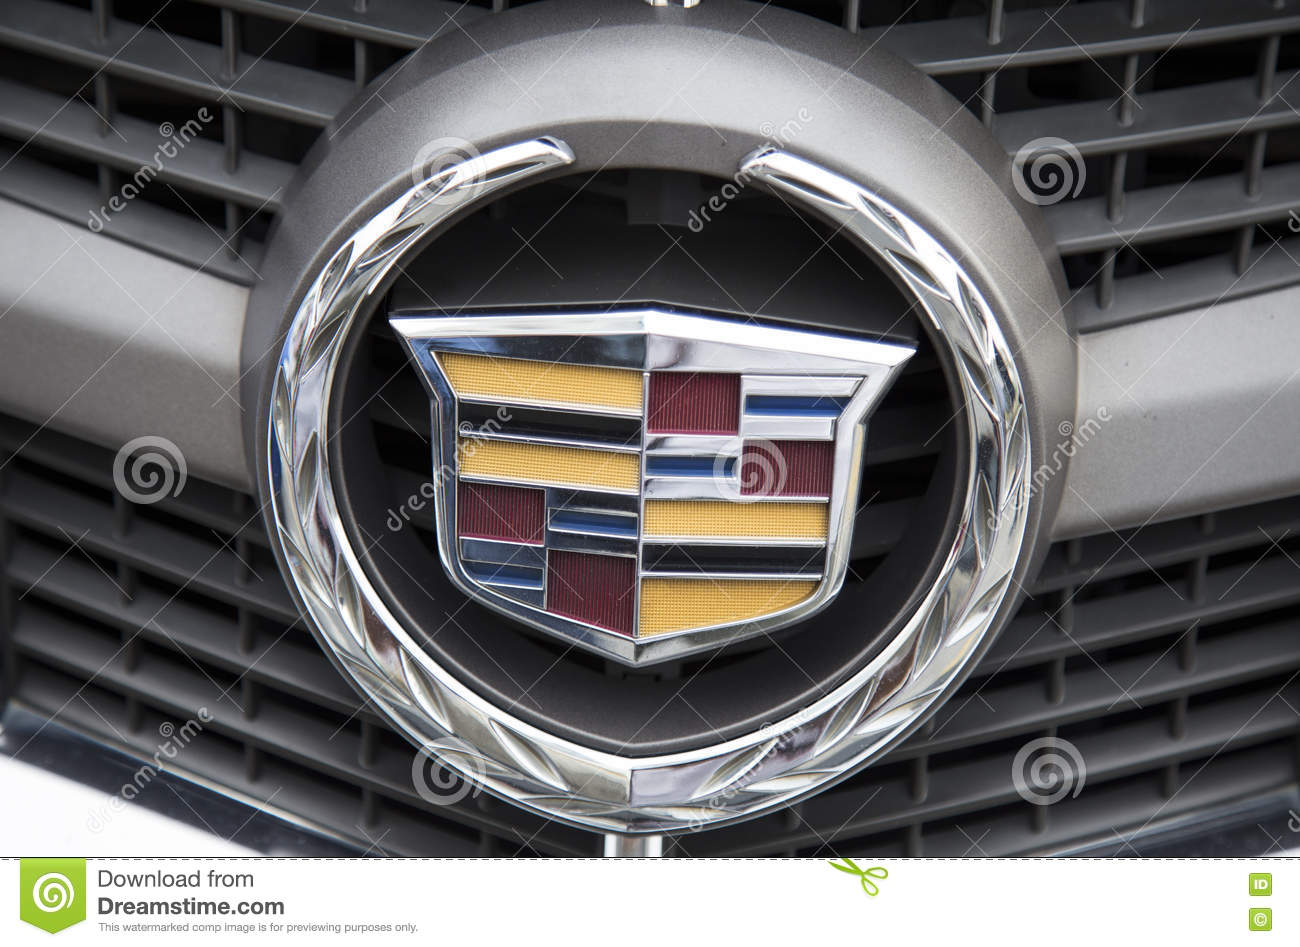 Logo Of Cadillac On The Car Front Taken Within A Test Drive